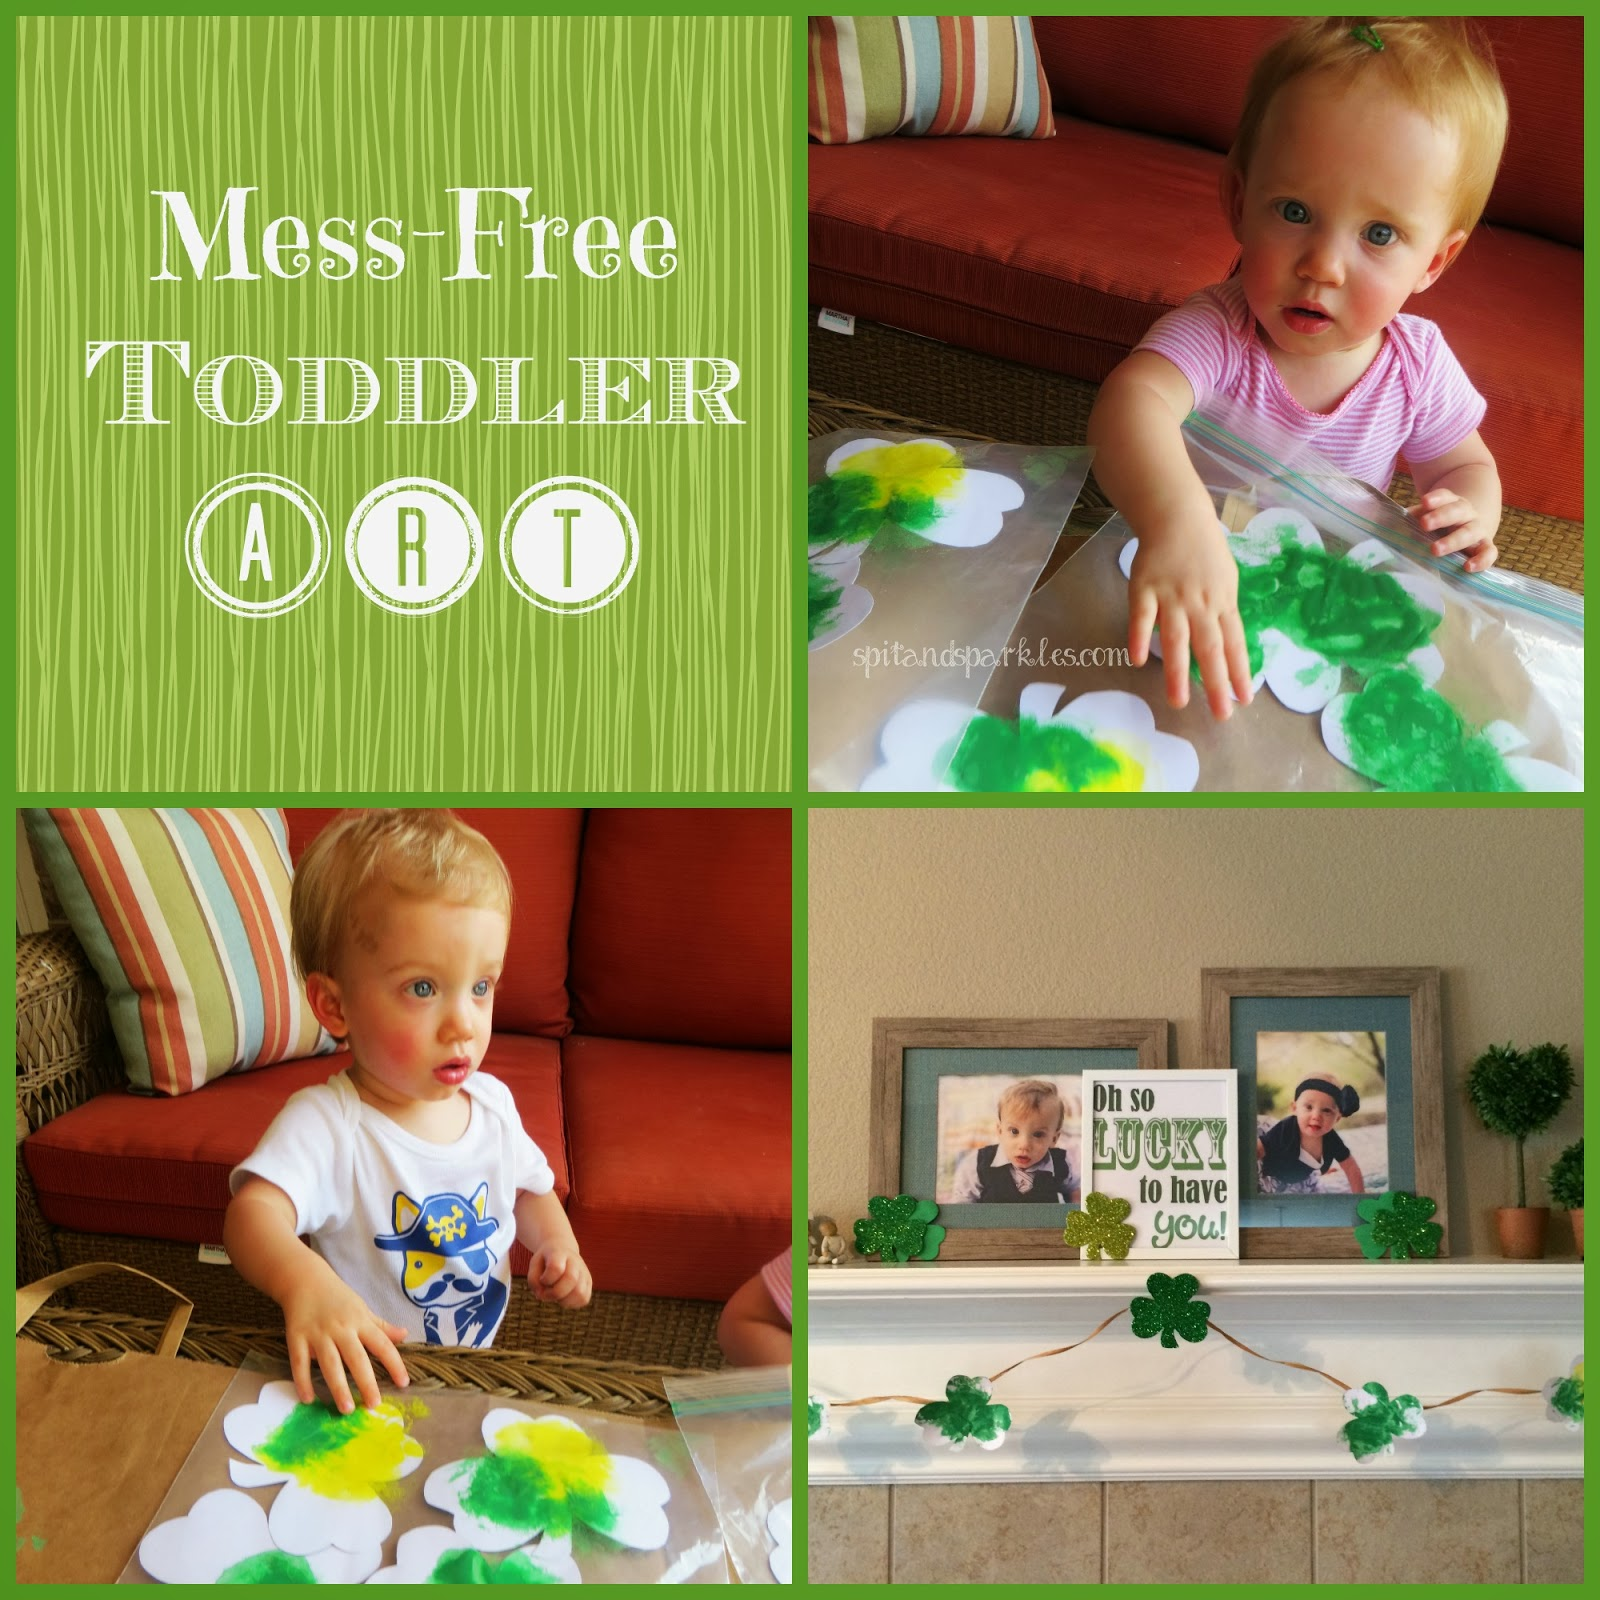 Create a mess-free art activity for your toddler by placing worksheet & paint inside a plastic baggie! #toddlerart #totschool #homeschool #messfree #paintforkids